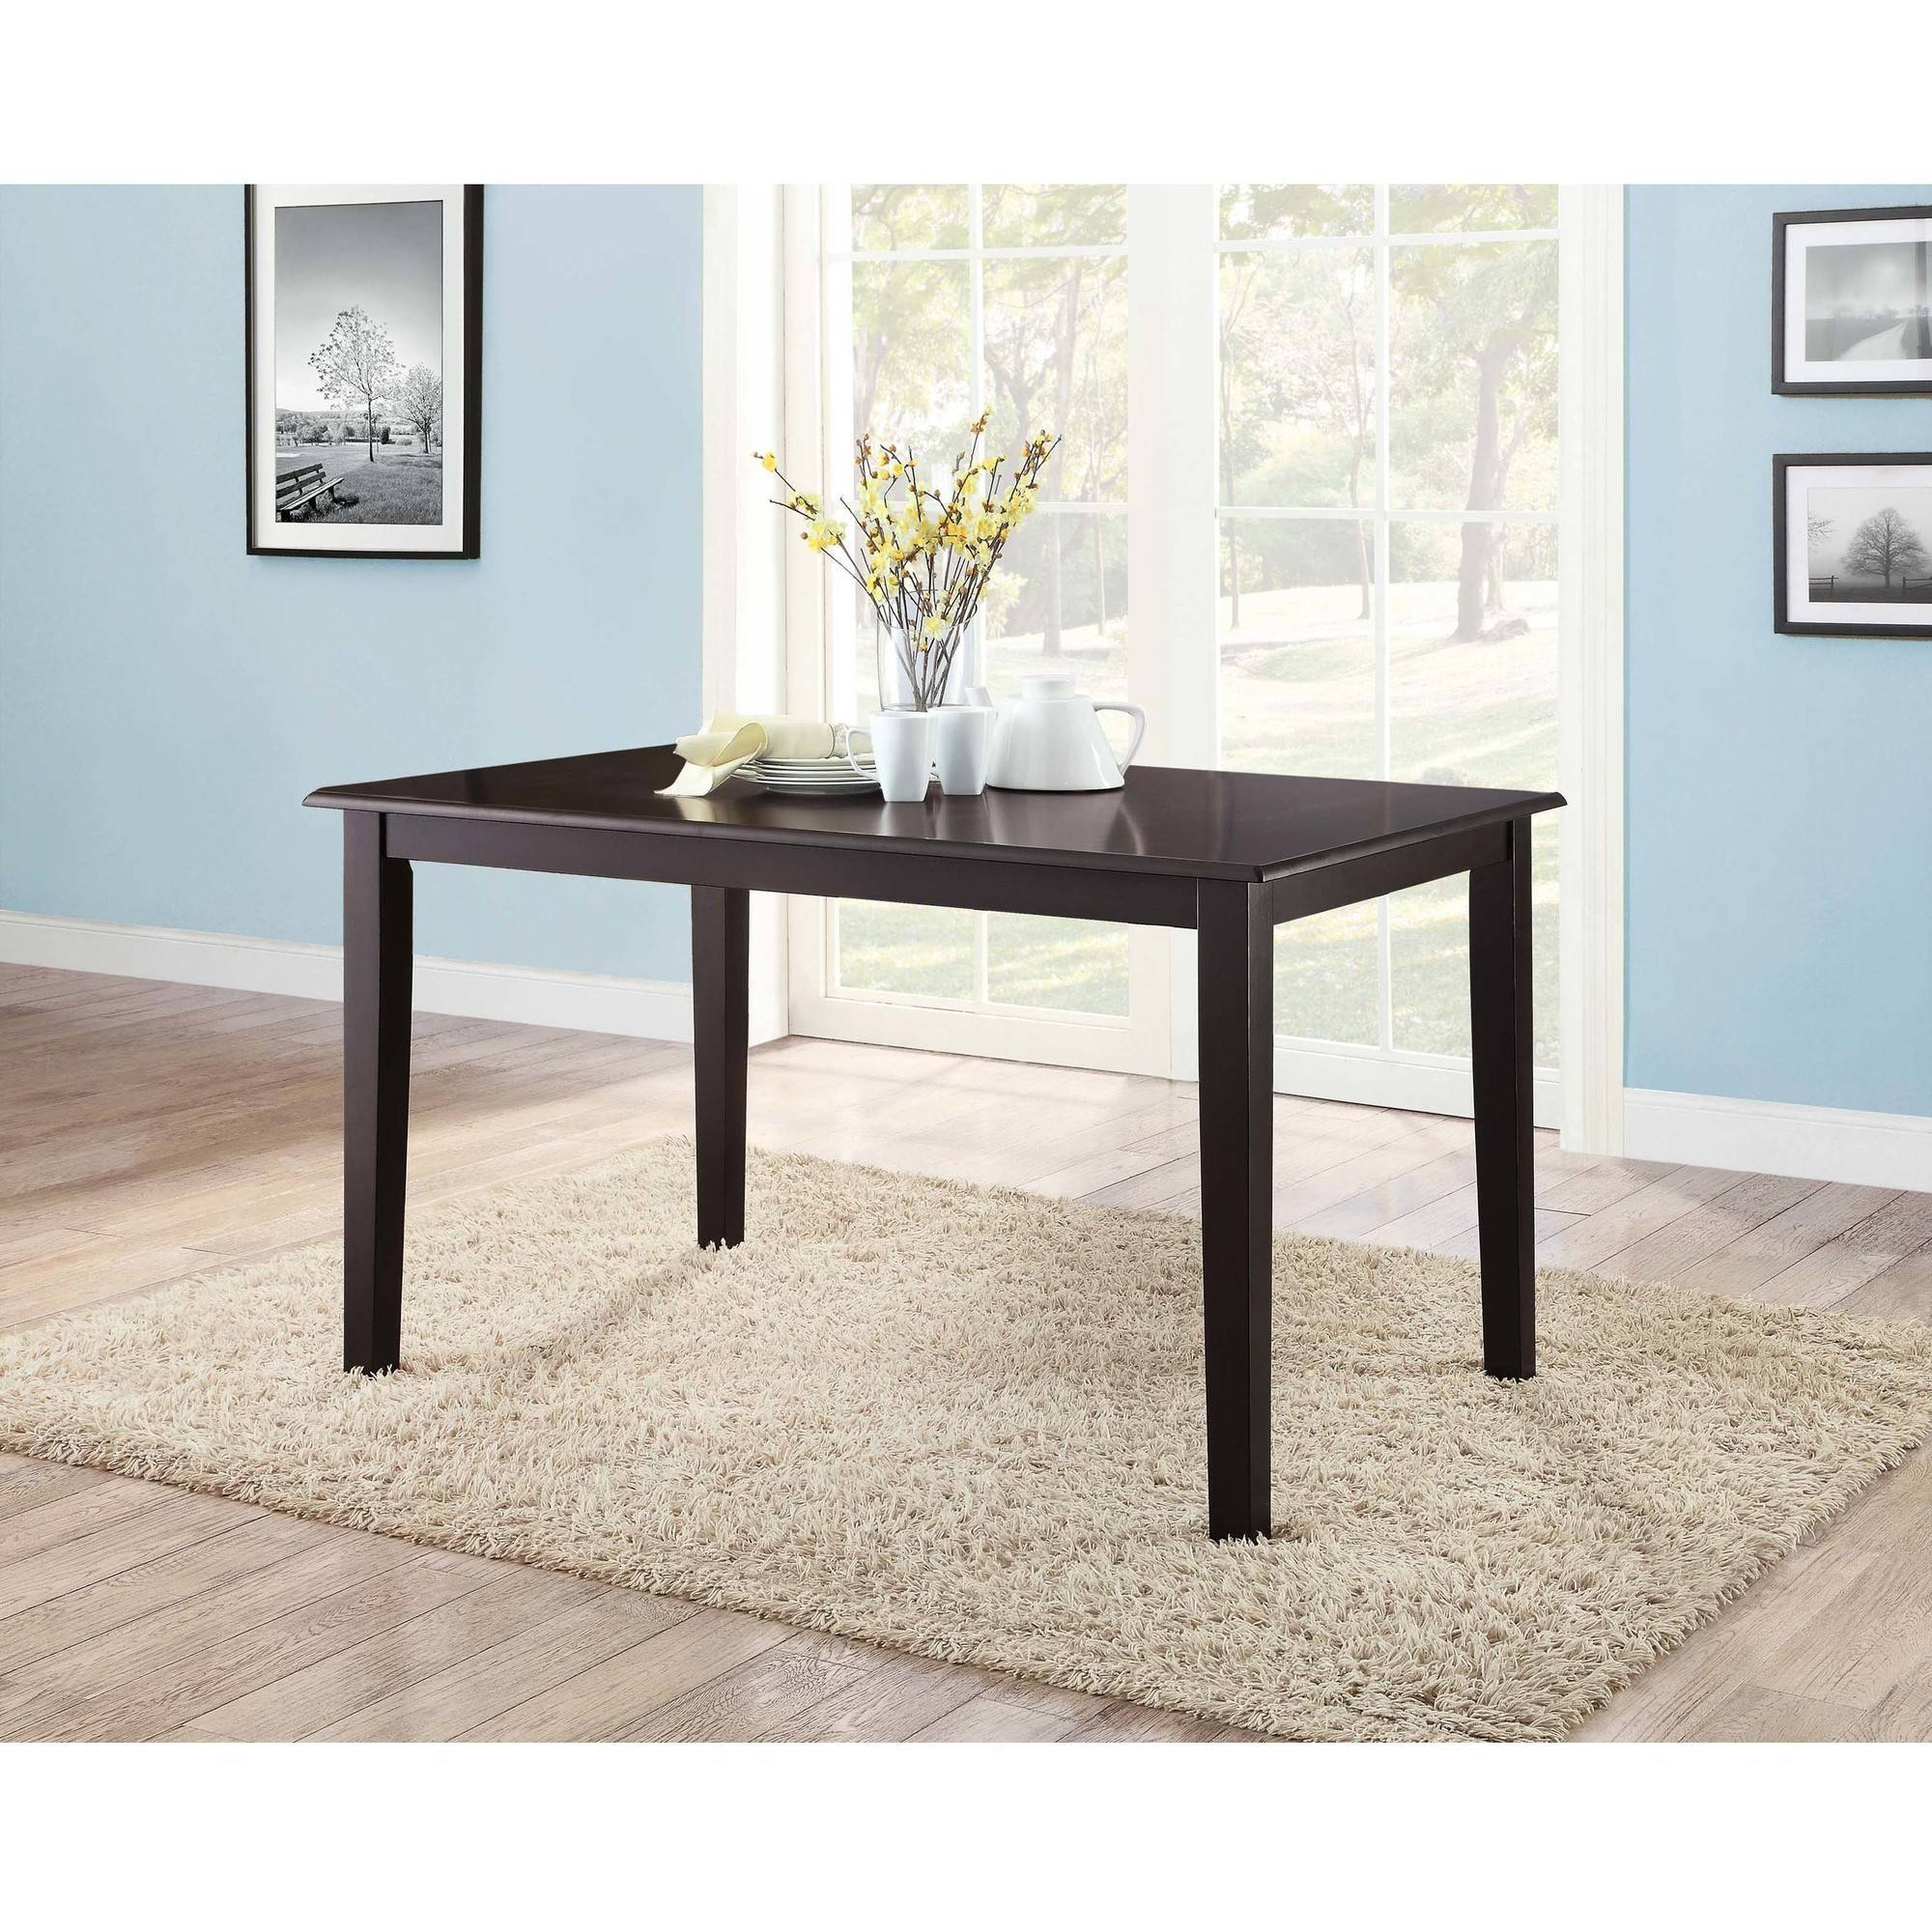 Mainstays Dining Table, Rich Espresso Finish (Seats 6 Comfortably)